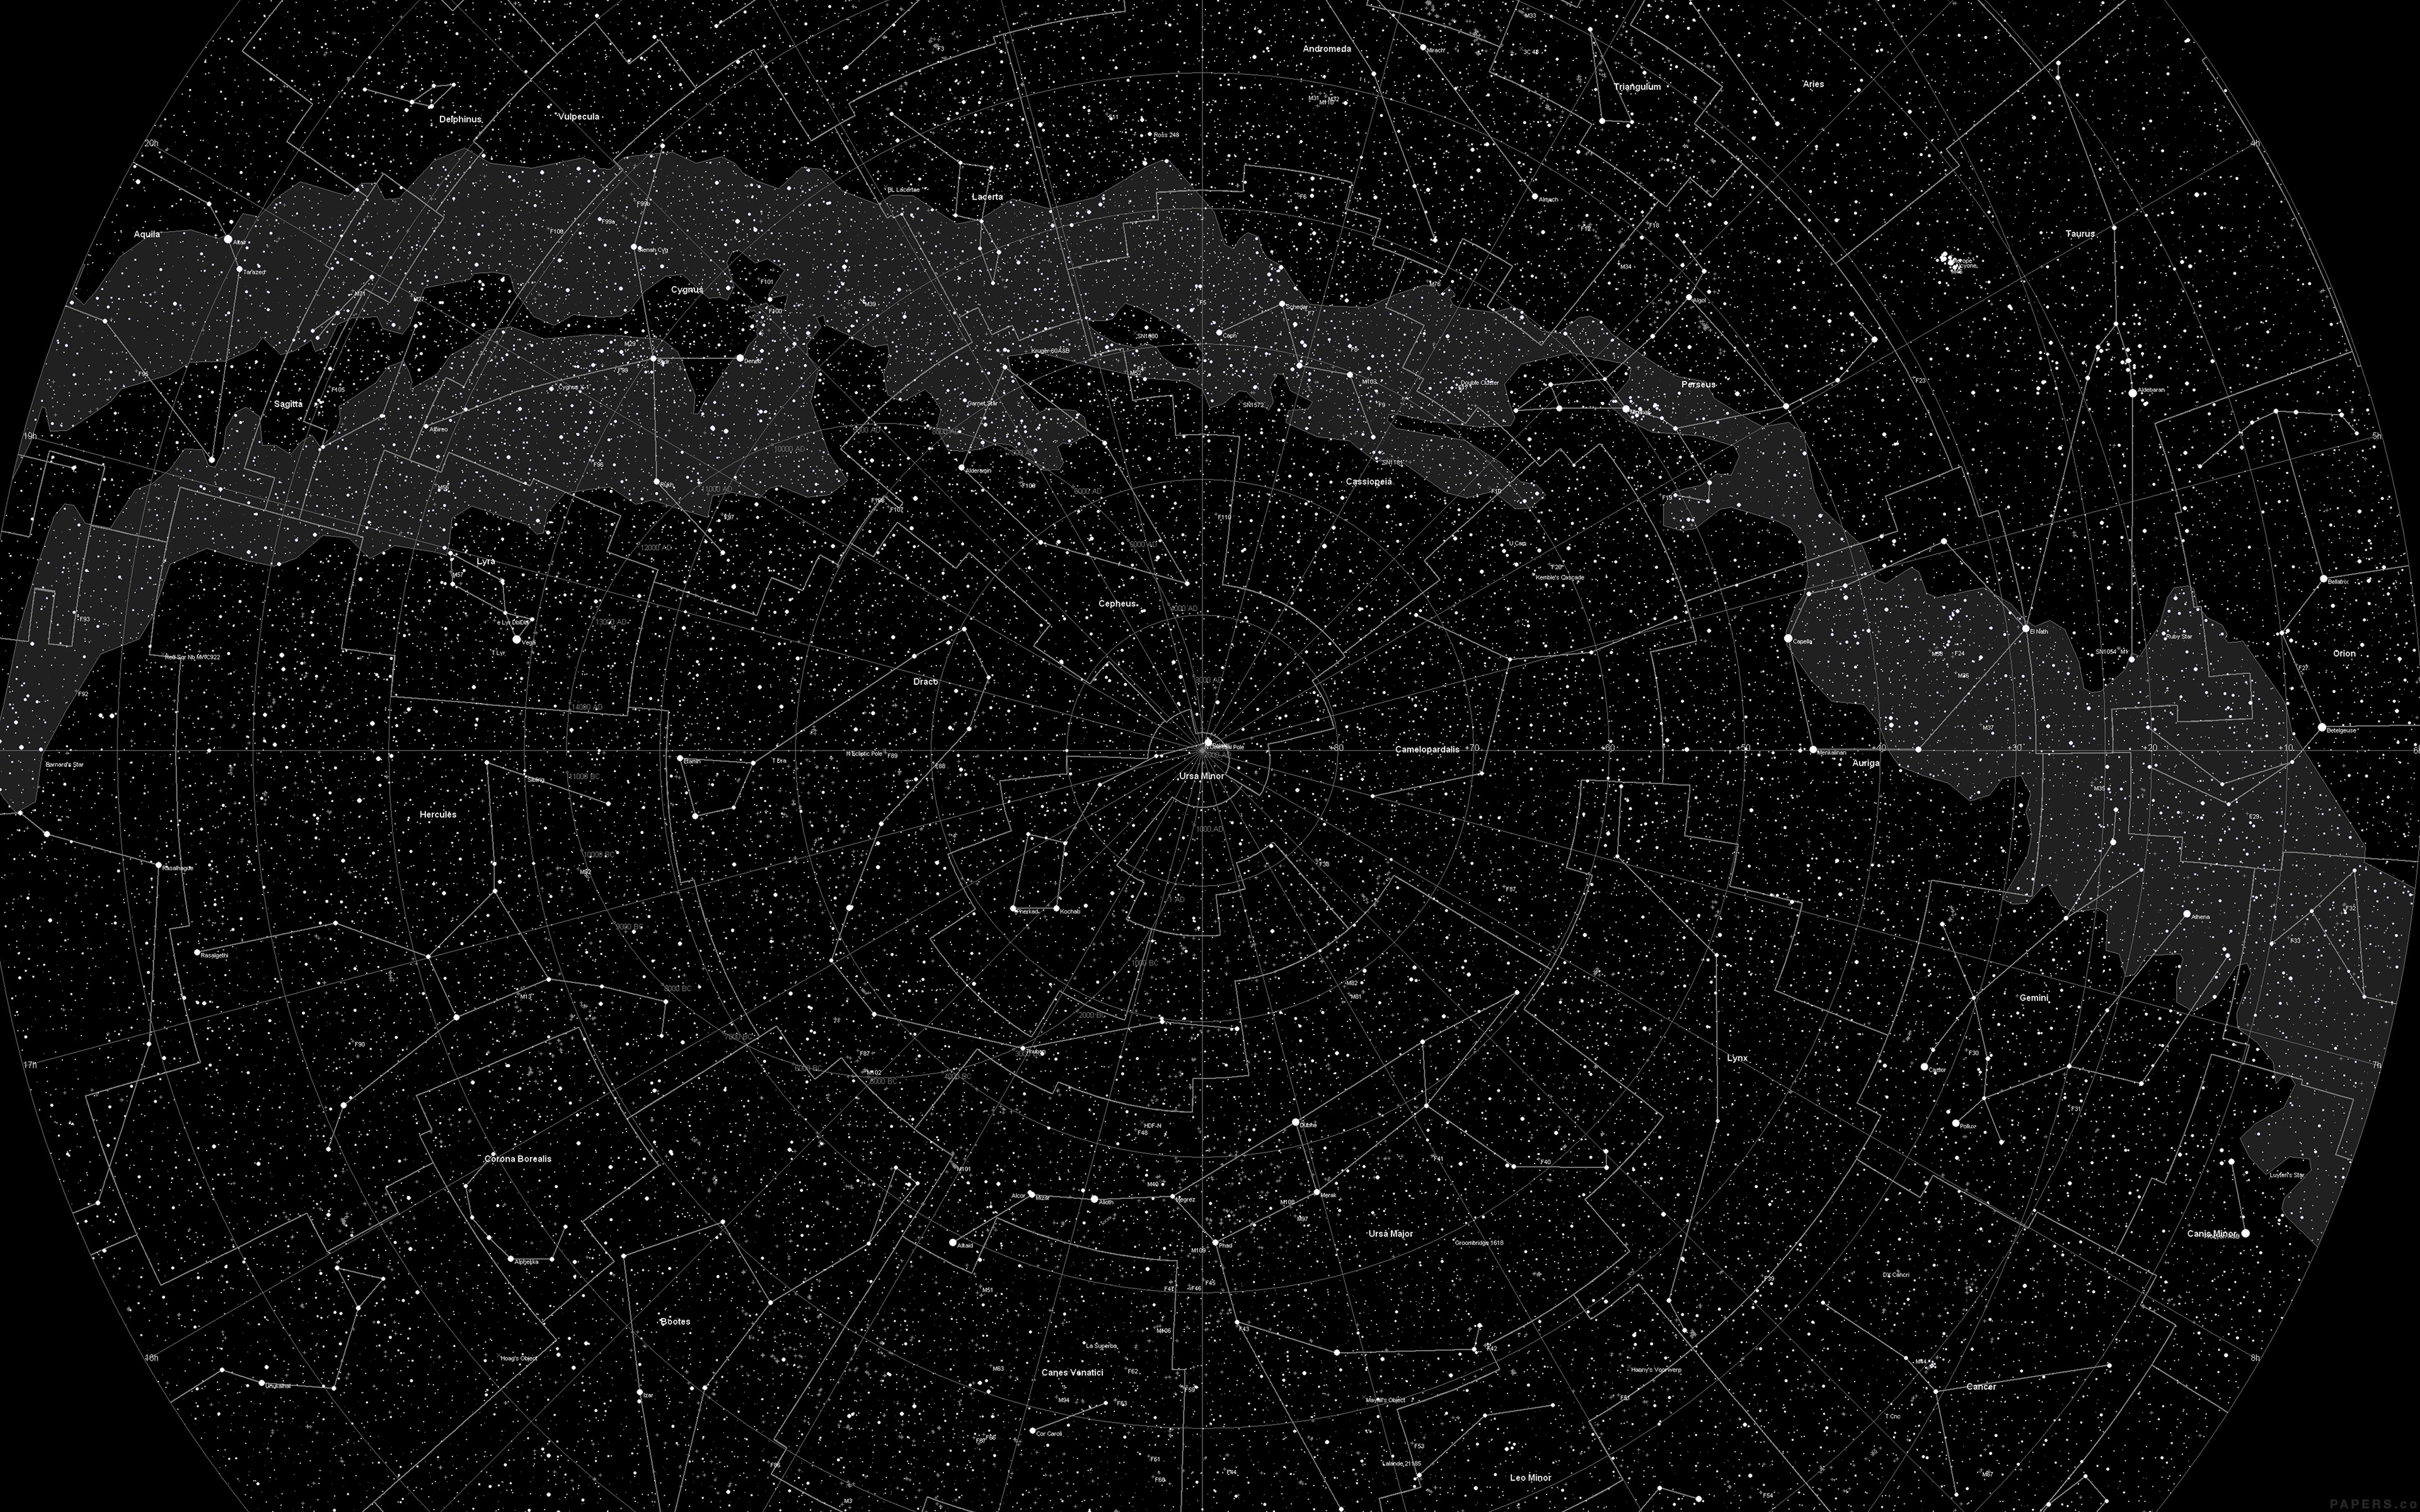 vj04-space-star-map-pattern-dark - Papers.co